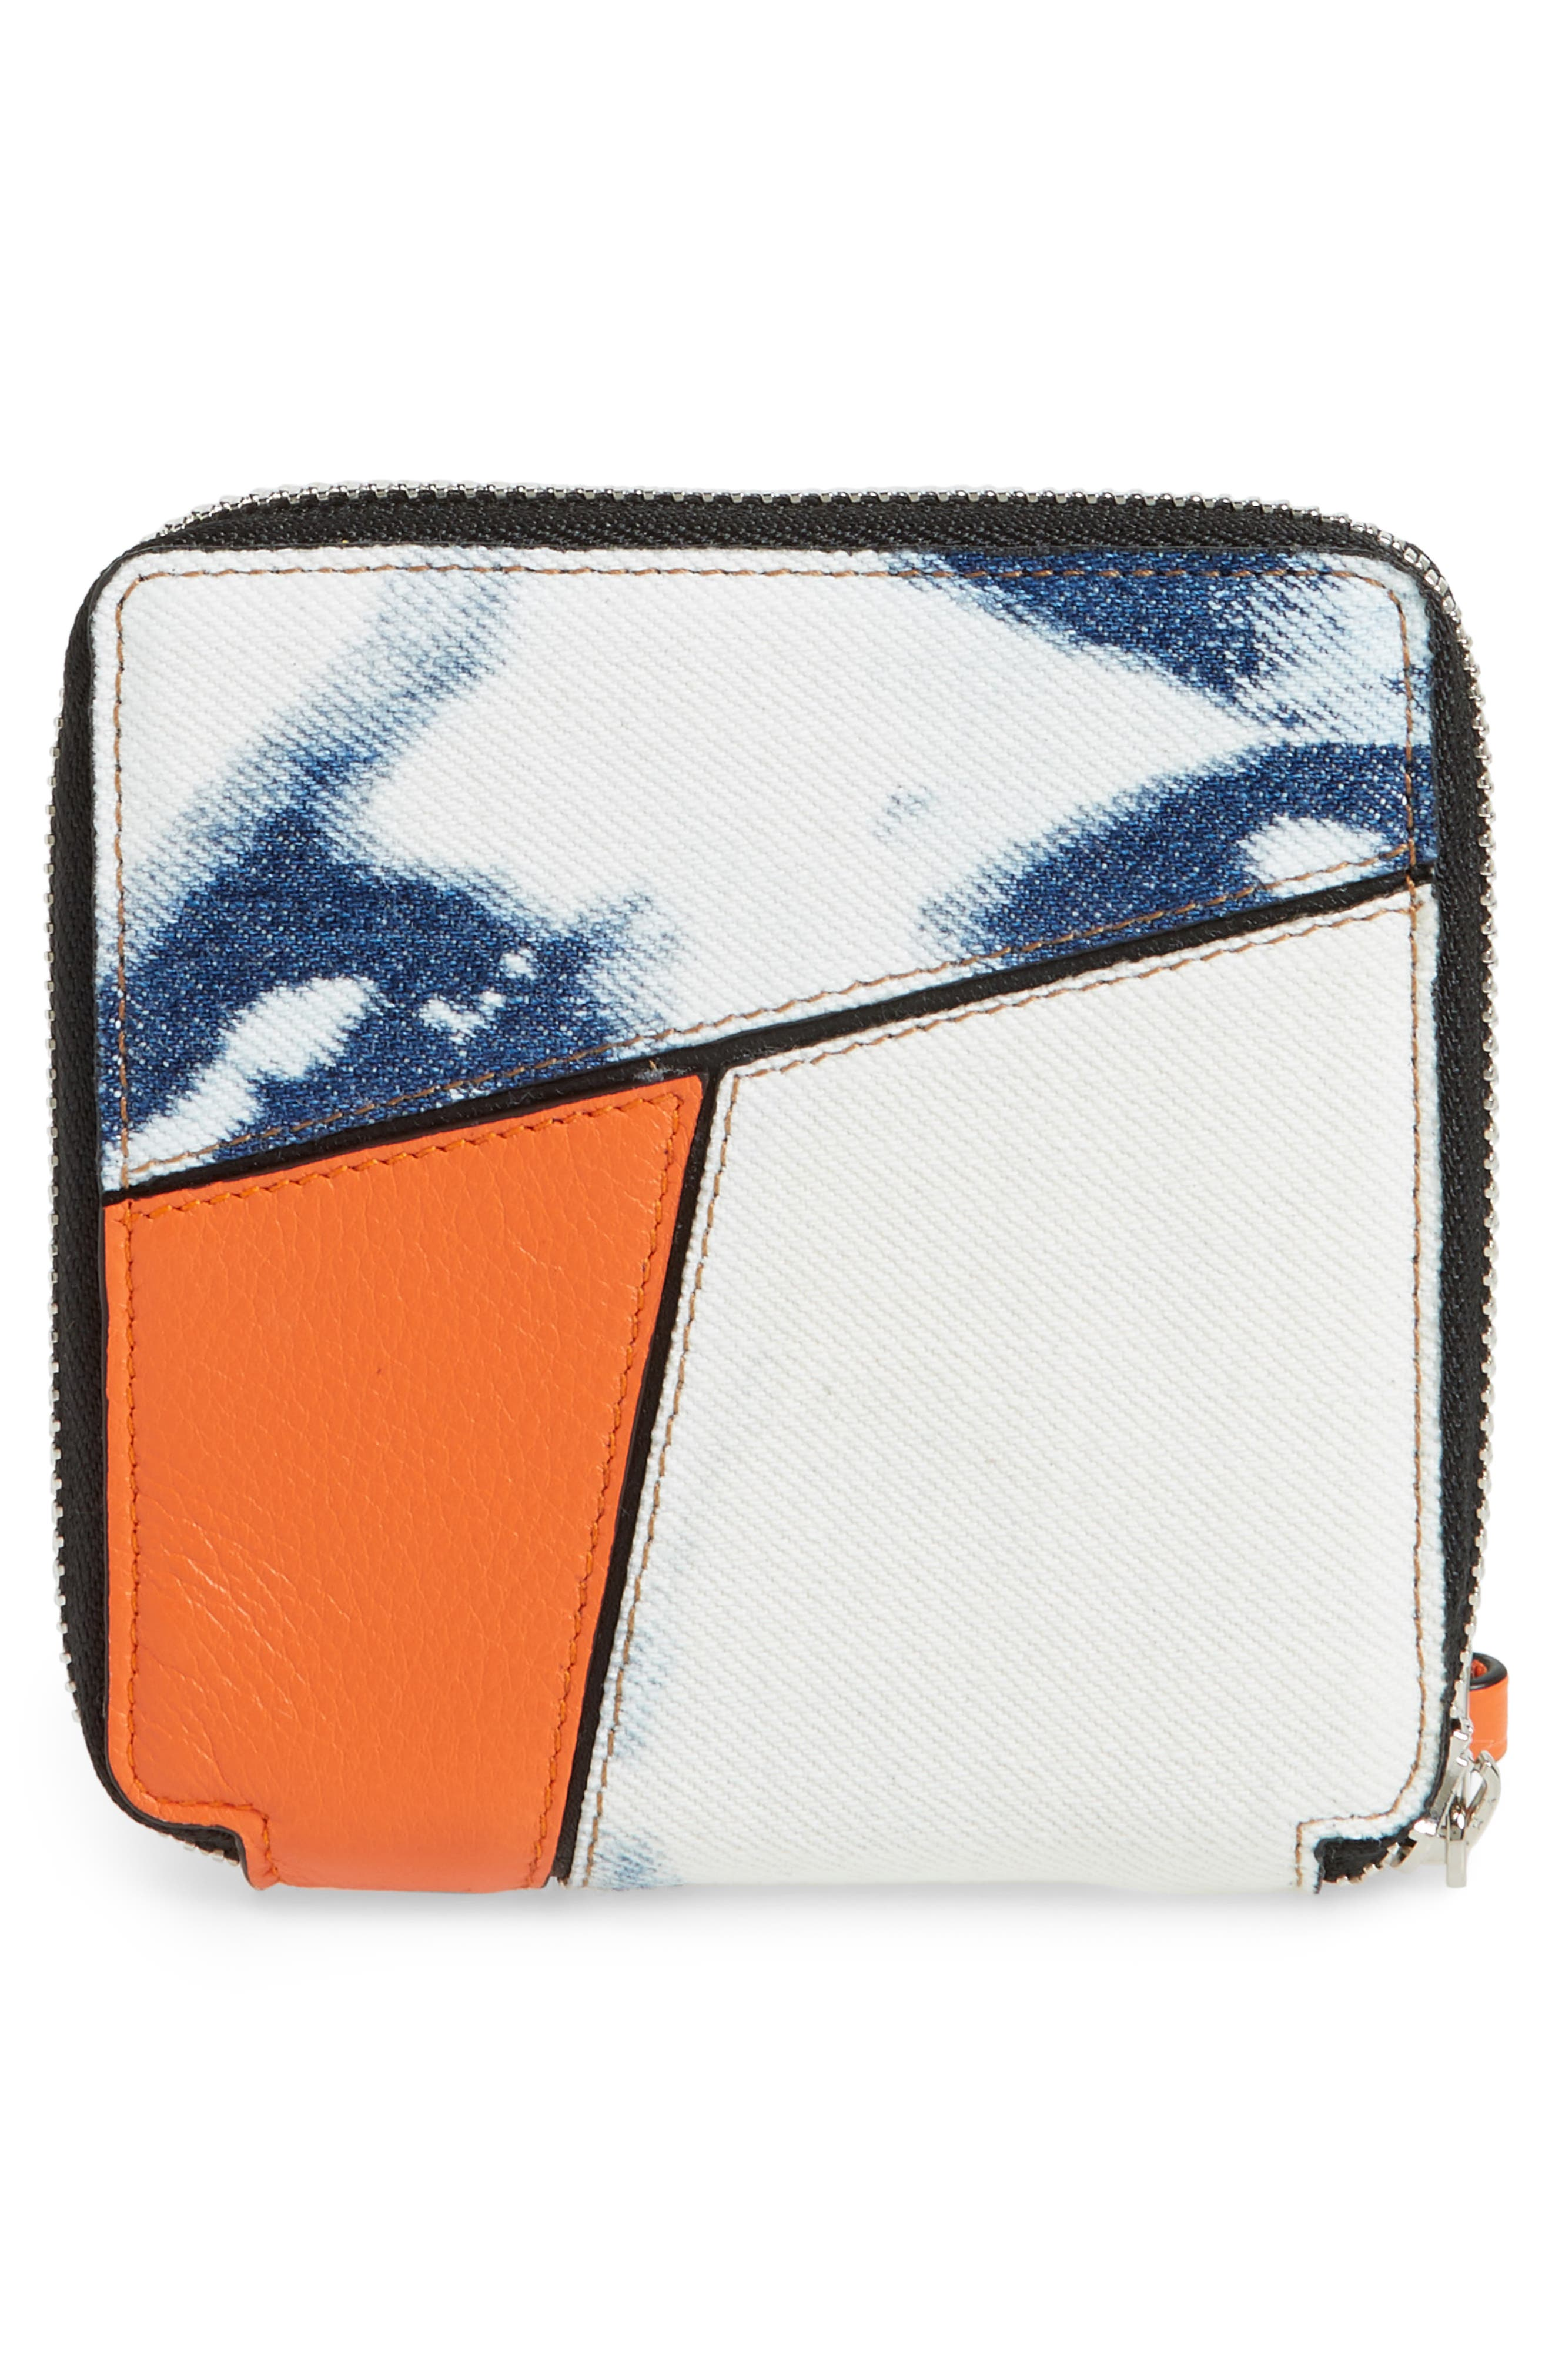 Small Puzzle Leather Zip Around French Wallet,                             Alternate thumbnail 4, color,                             001